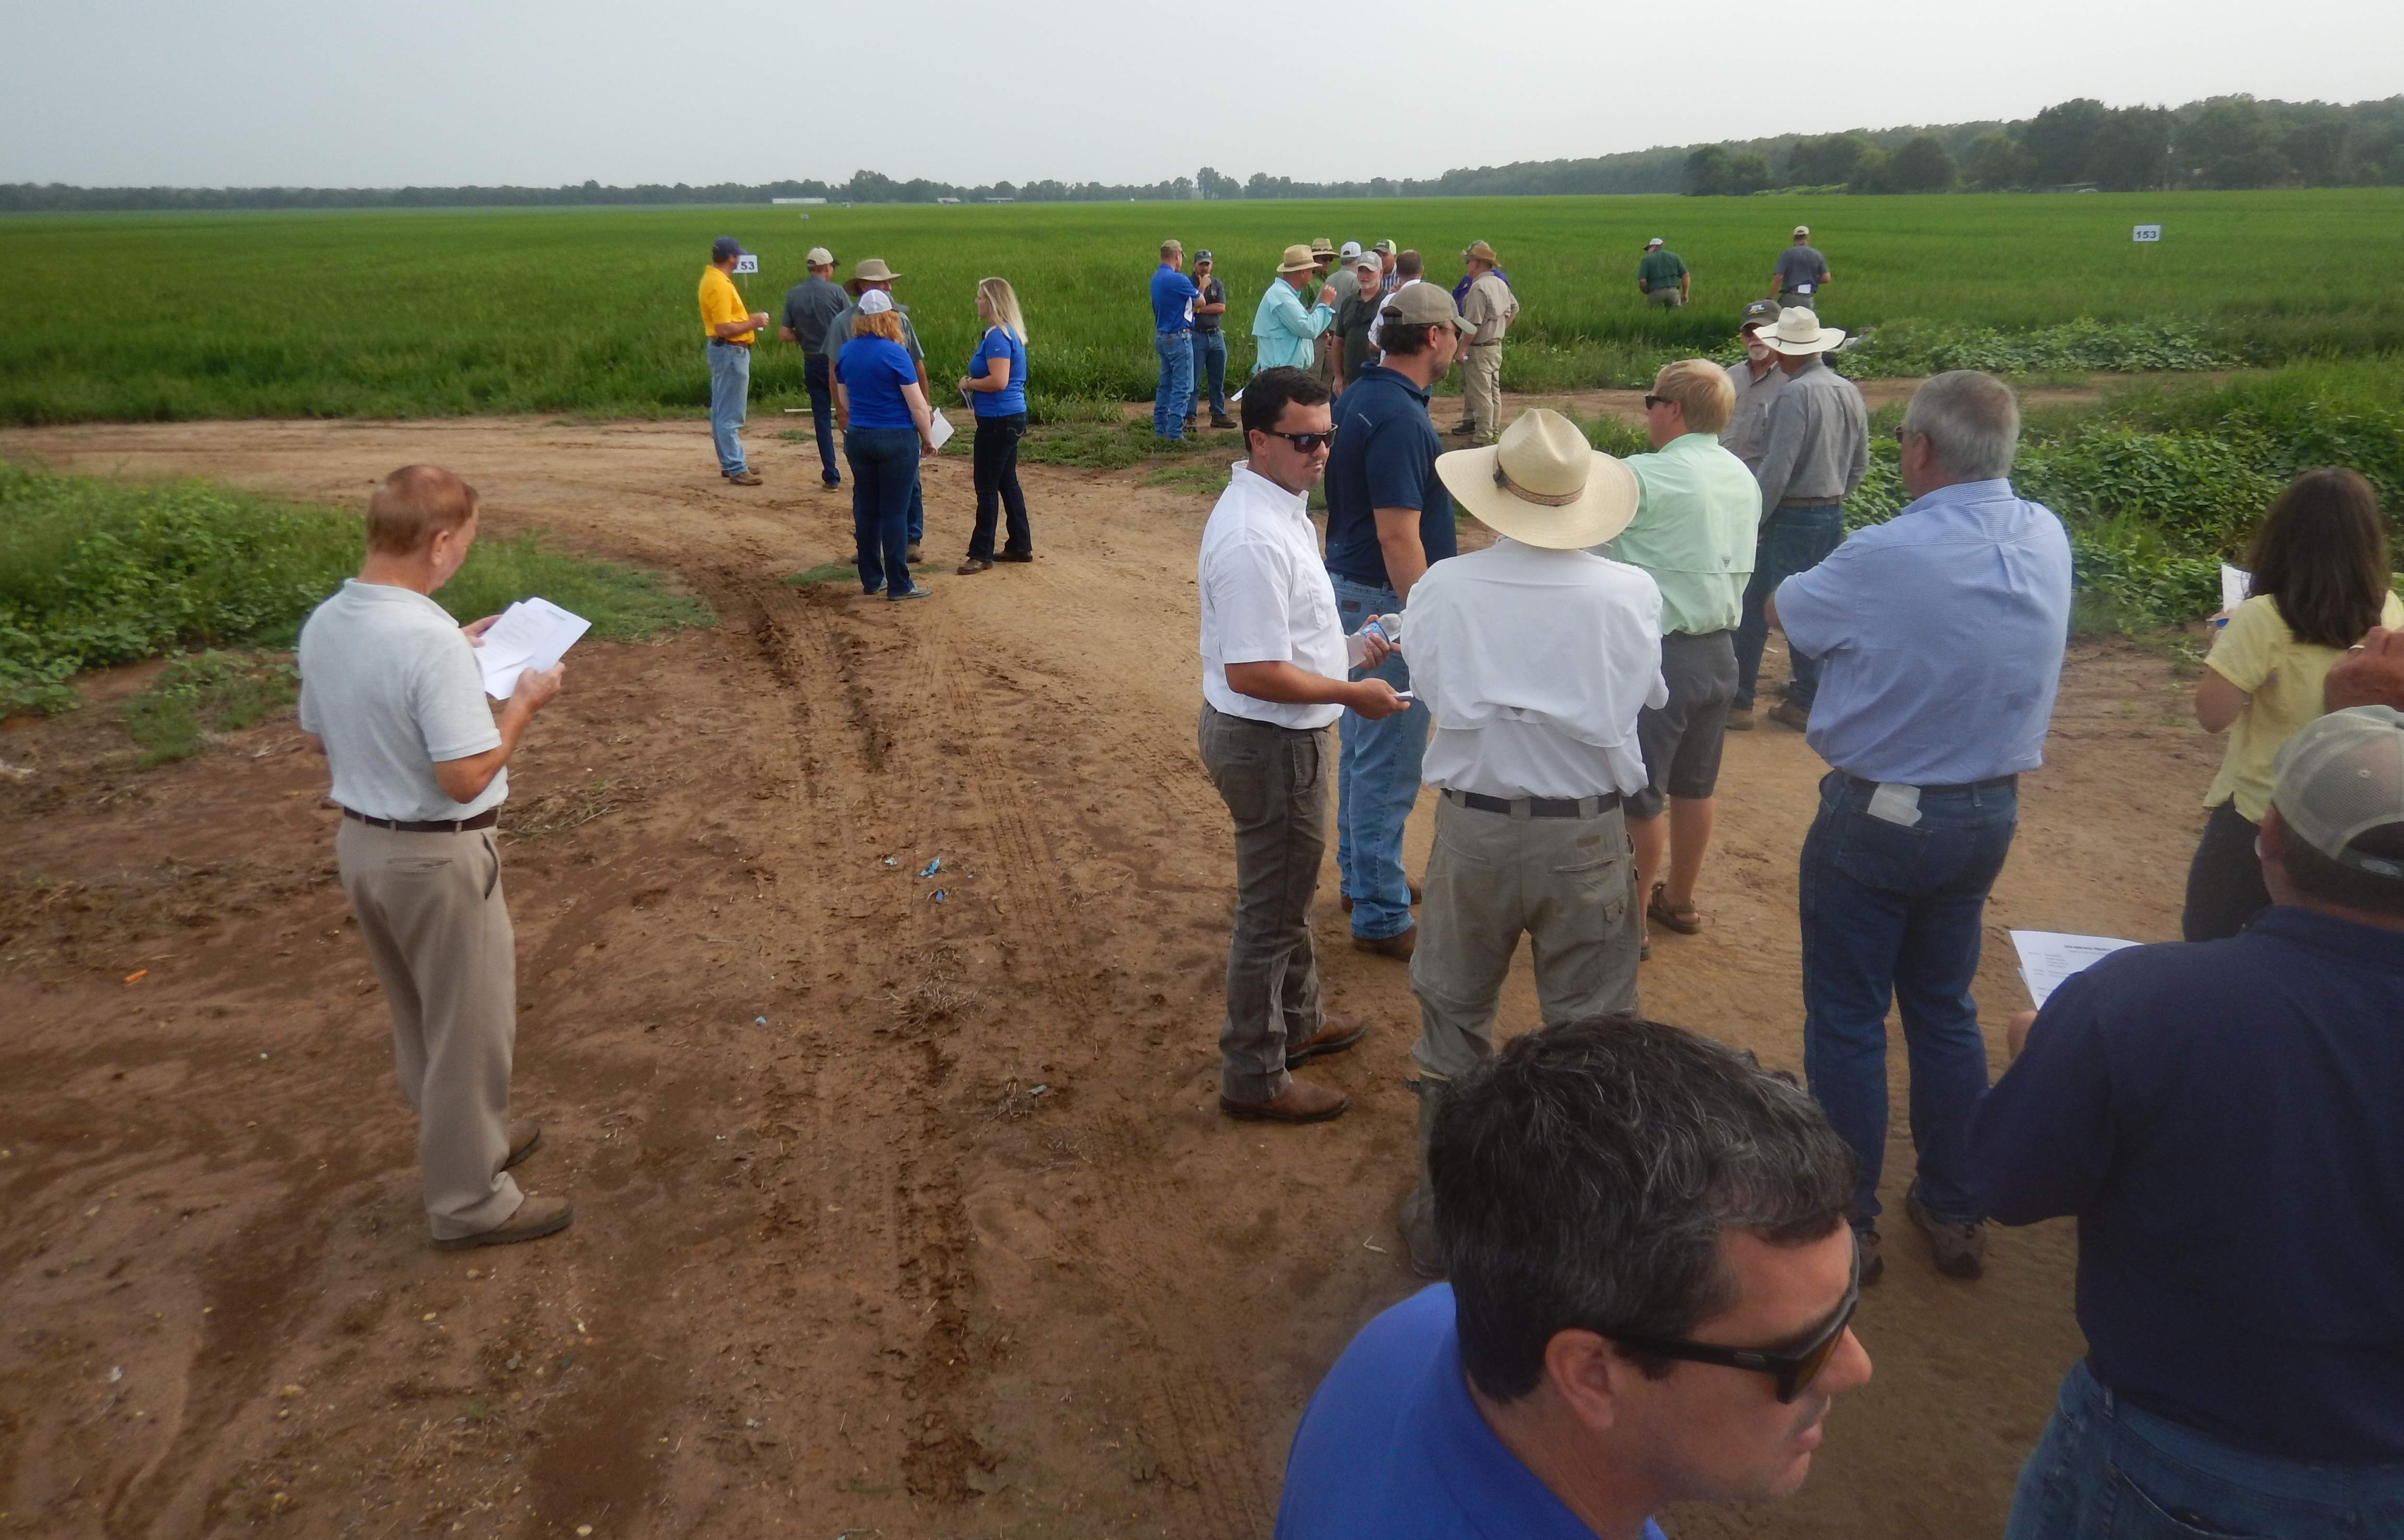 2018 NELA Field Day, lots of people, casually dressed, milling around near a rice field